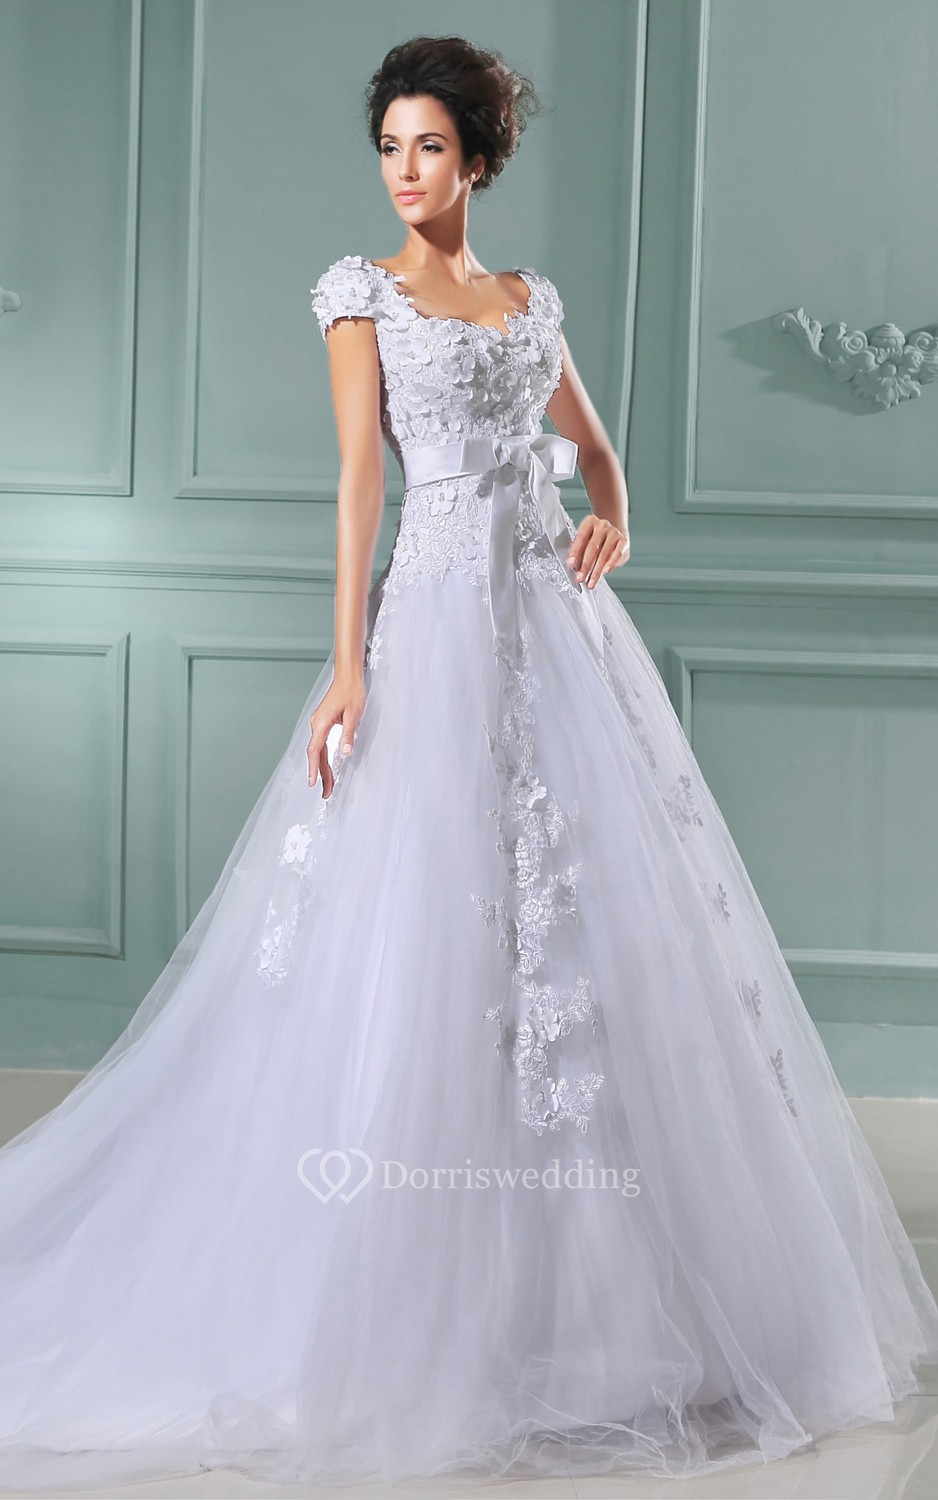 Queen anne neckline a line dress with lace bodice and for Queen anne neckline wedding dress